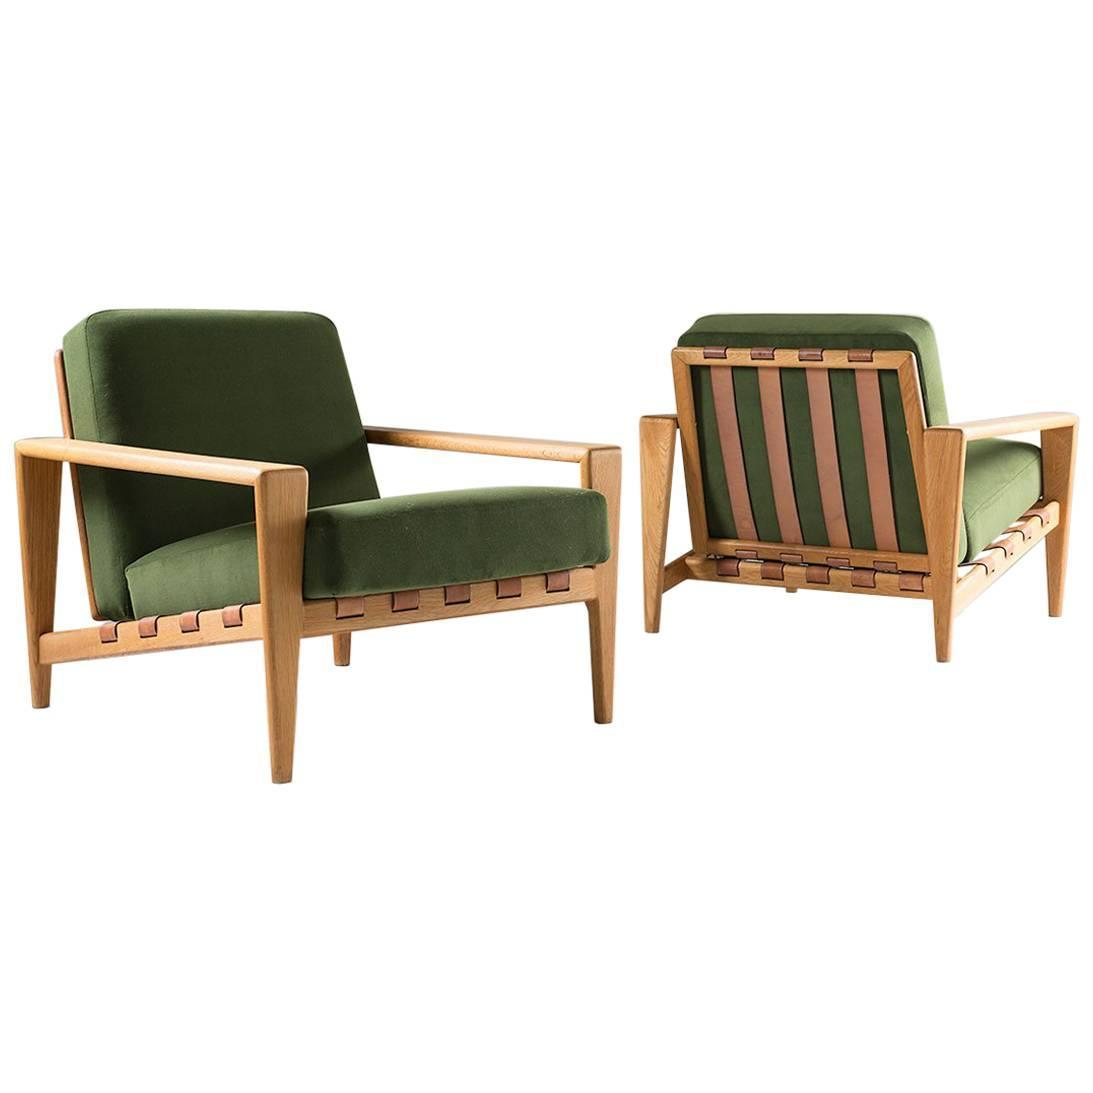 Swedish Mid Century Furniture Scandinavian Mid Century Lounge Chairs